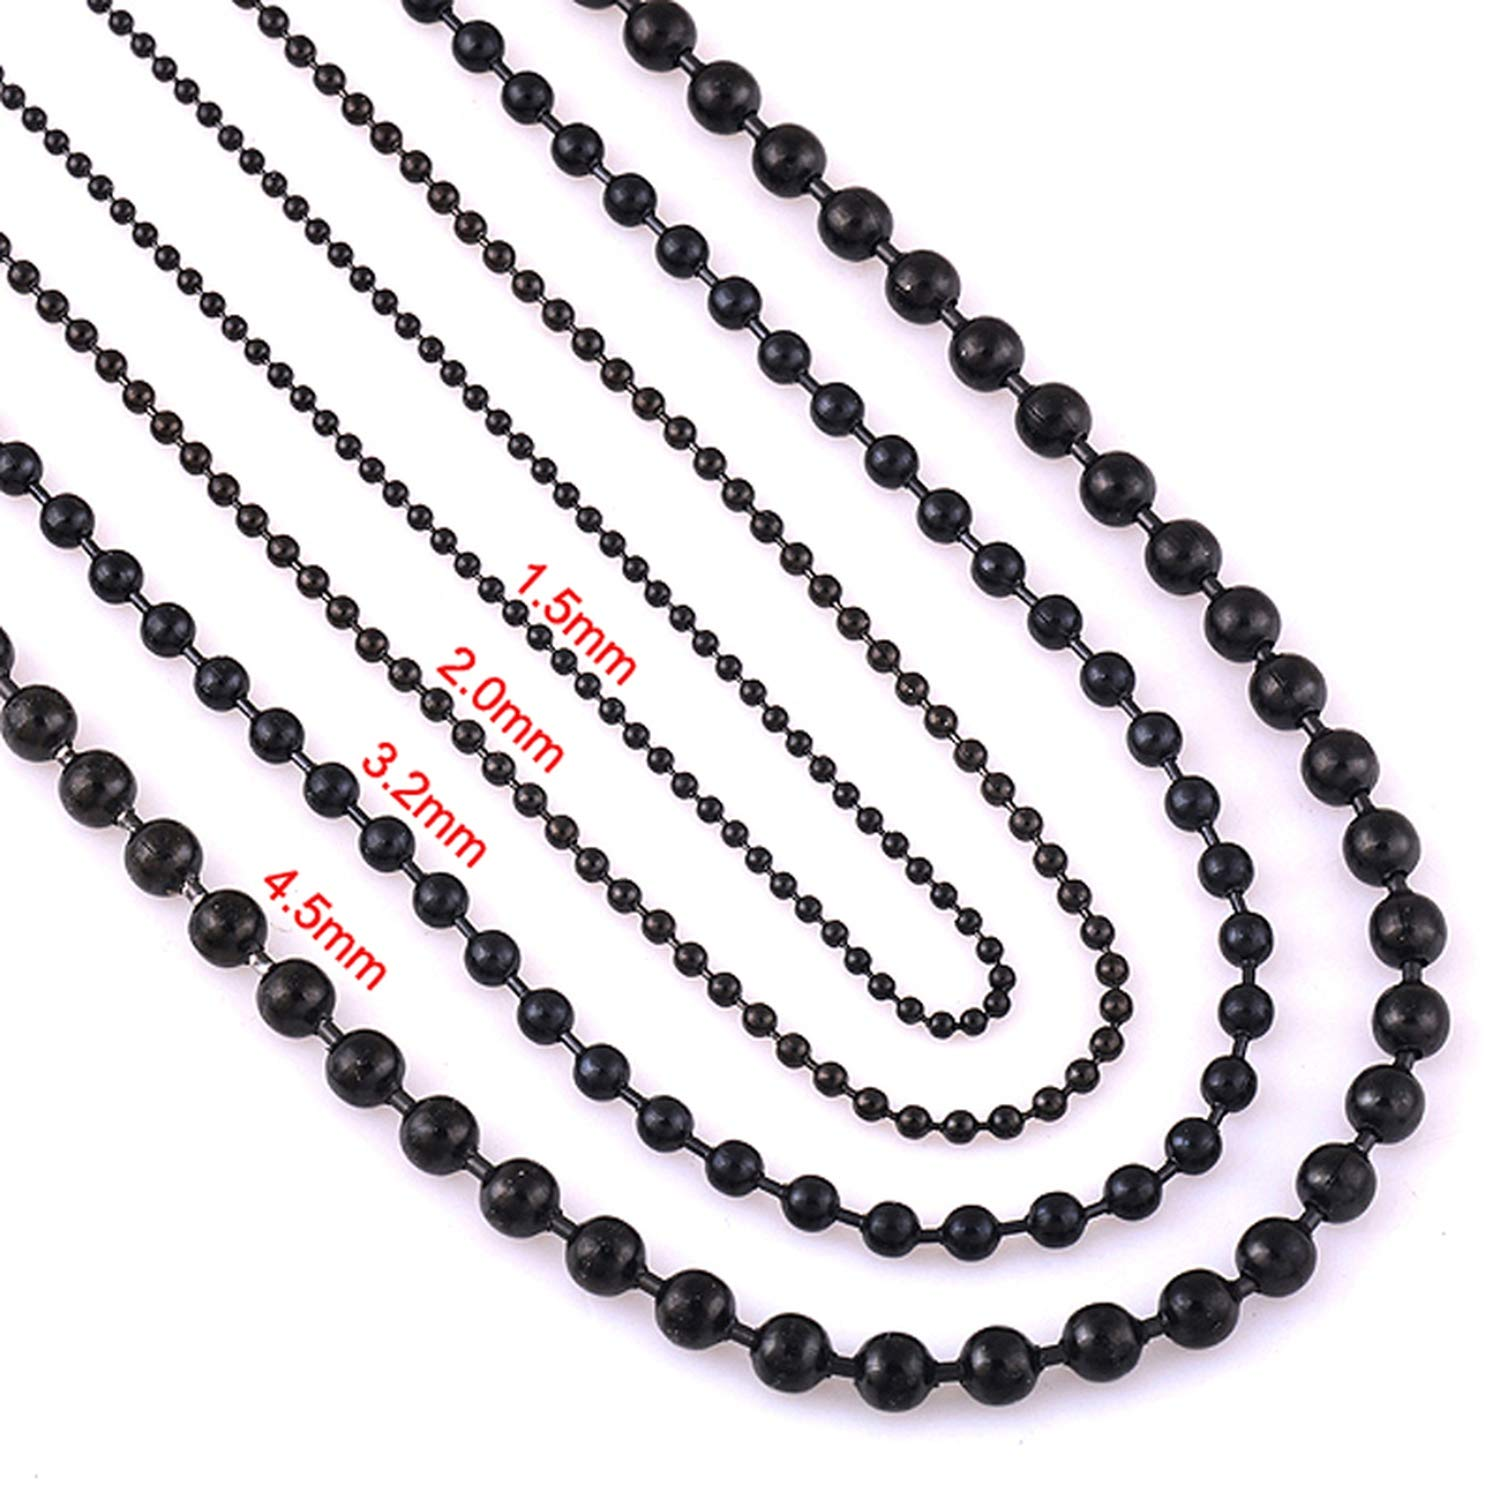 Friendshiy Width 1.5mm//2.0mm//3.2mm//4.5mm Black Stainless Steel Ball Chain for Charm Pendant Waterproof Match Rolo Chain Necklace Wholesale